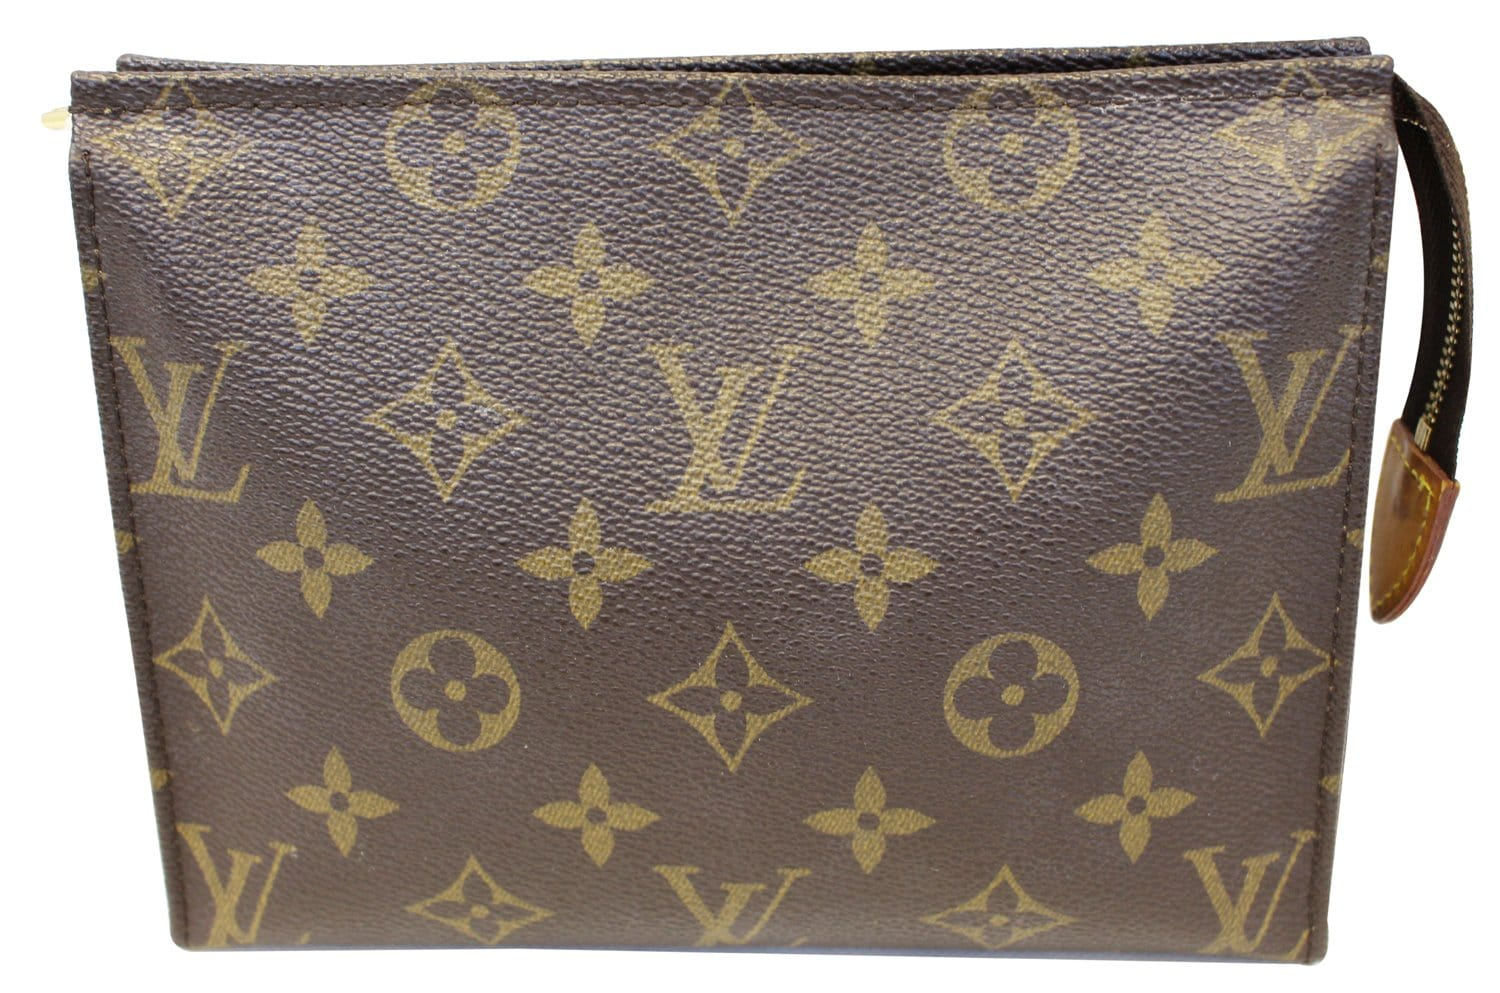 df09413eb4d0 LOUIS VUITTON Monogram Canvas Poche Toilette 19 Cosmetics Pouch ...